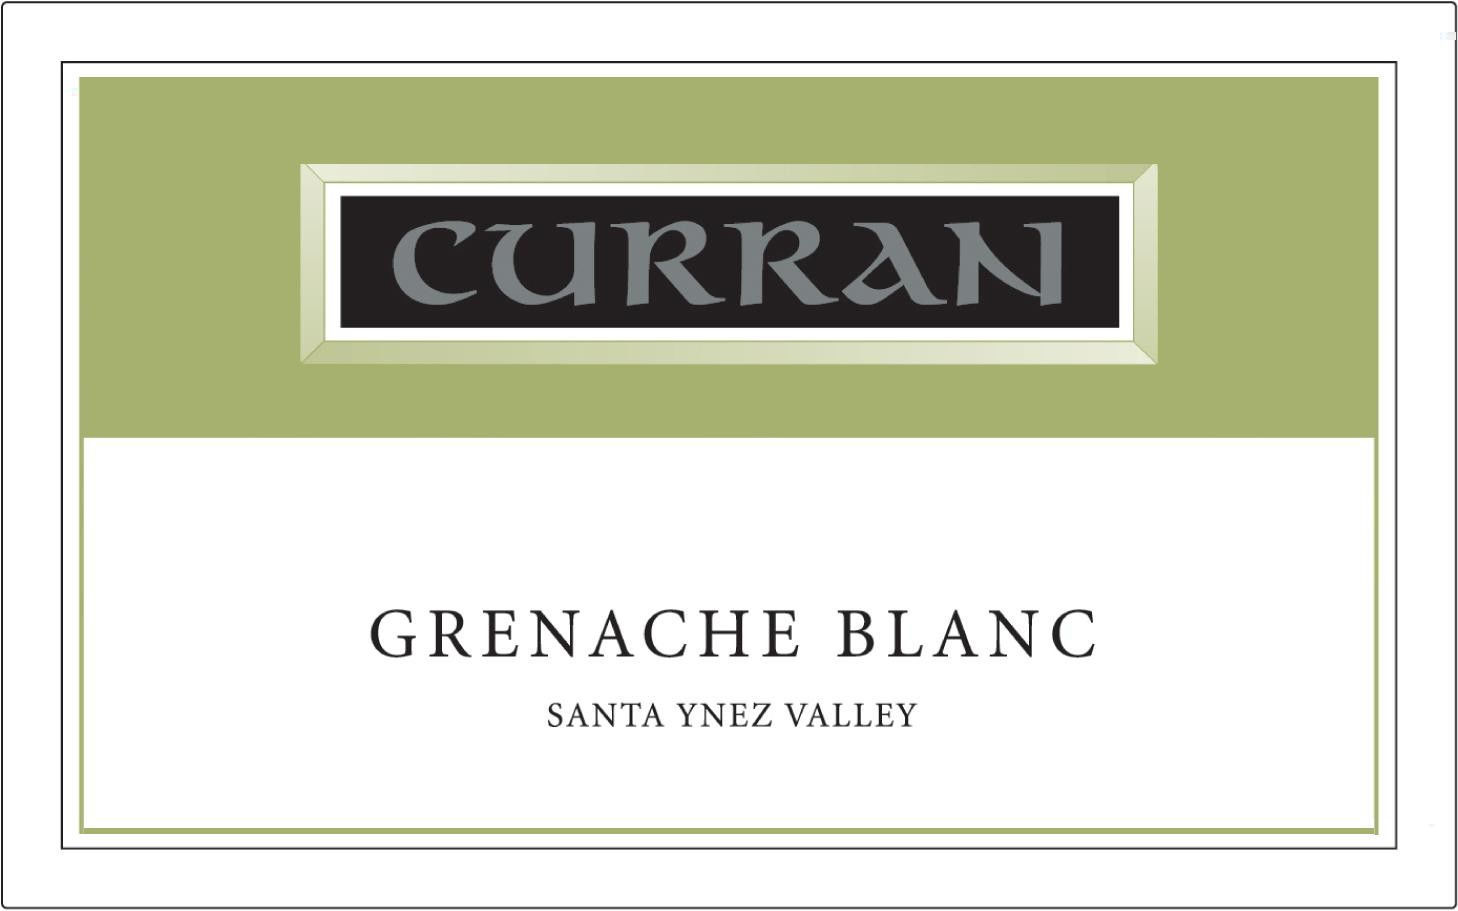 Curran Grenache Blanc 2012 Front Label